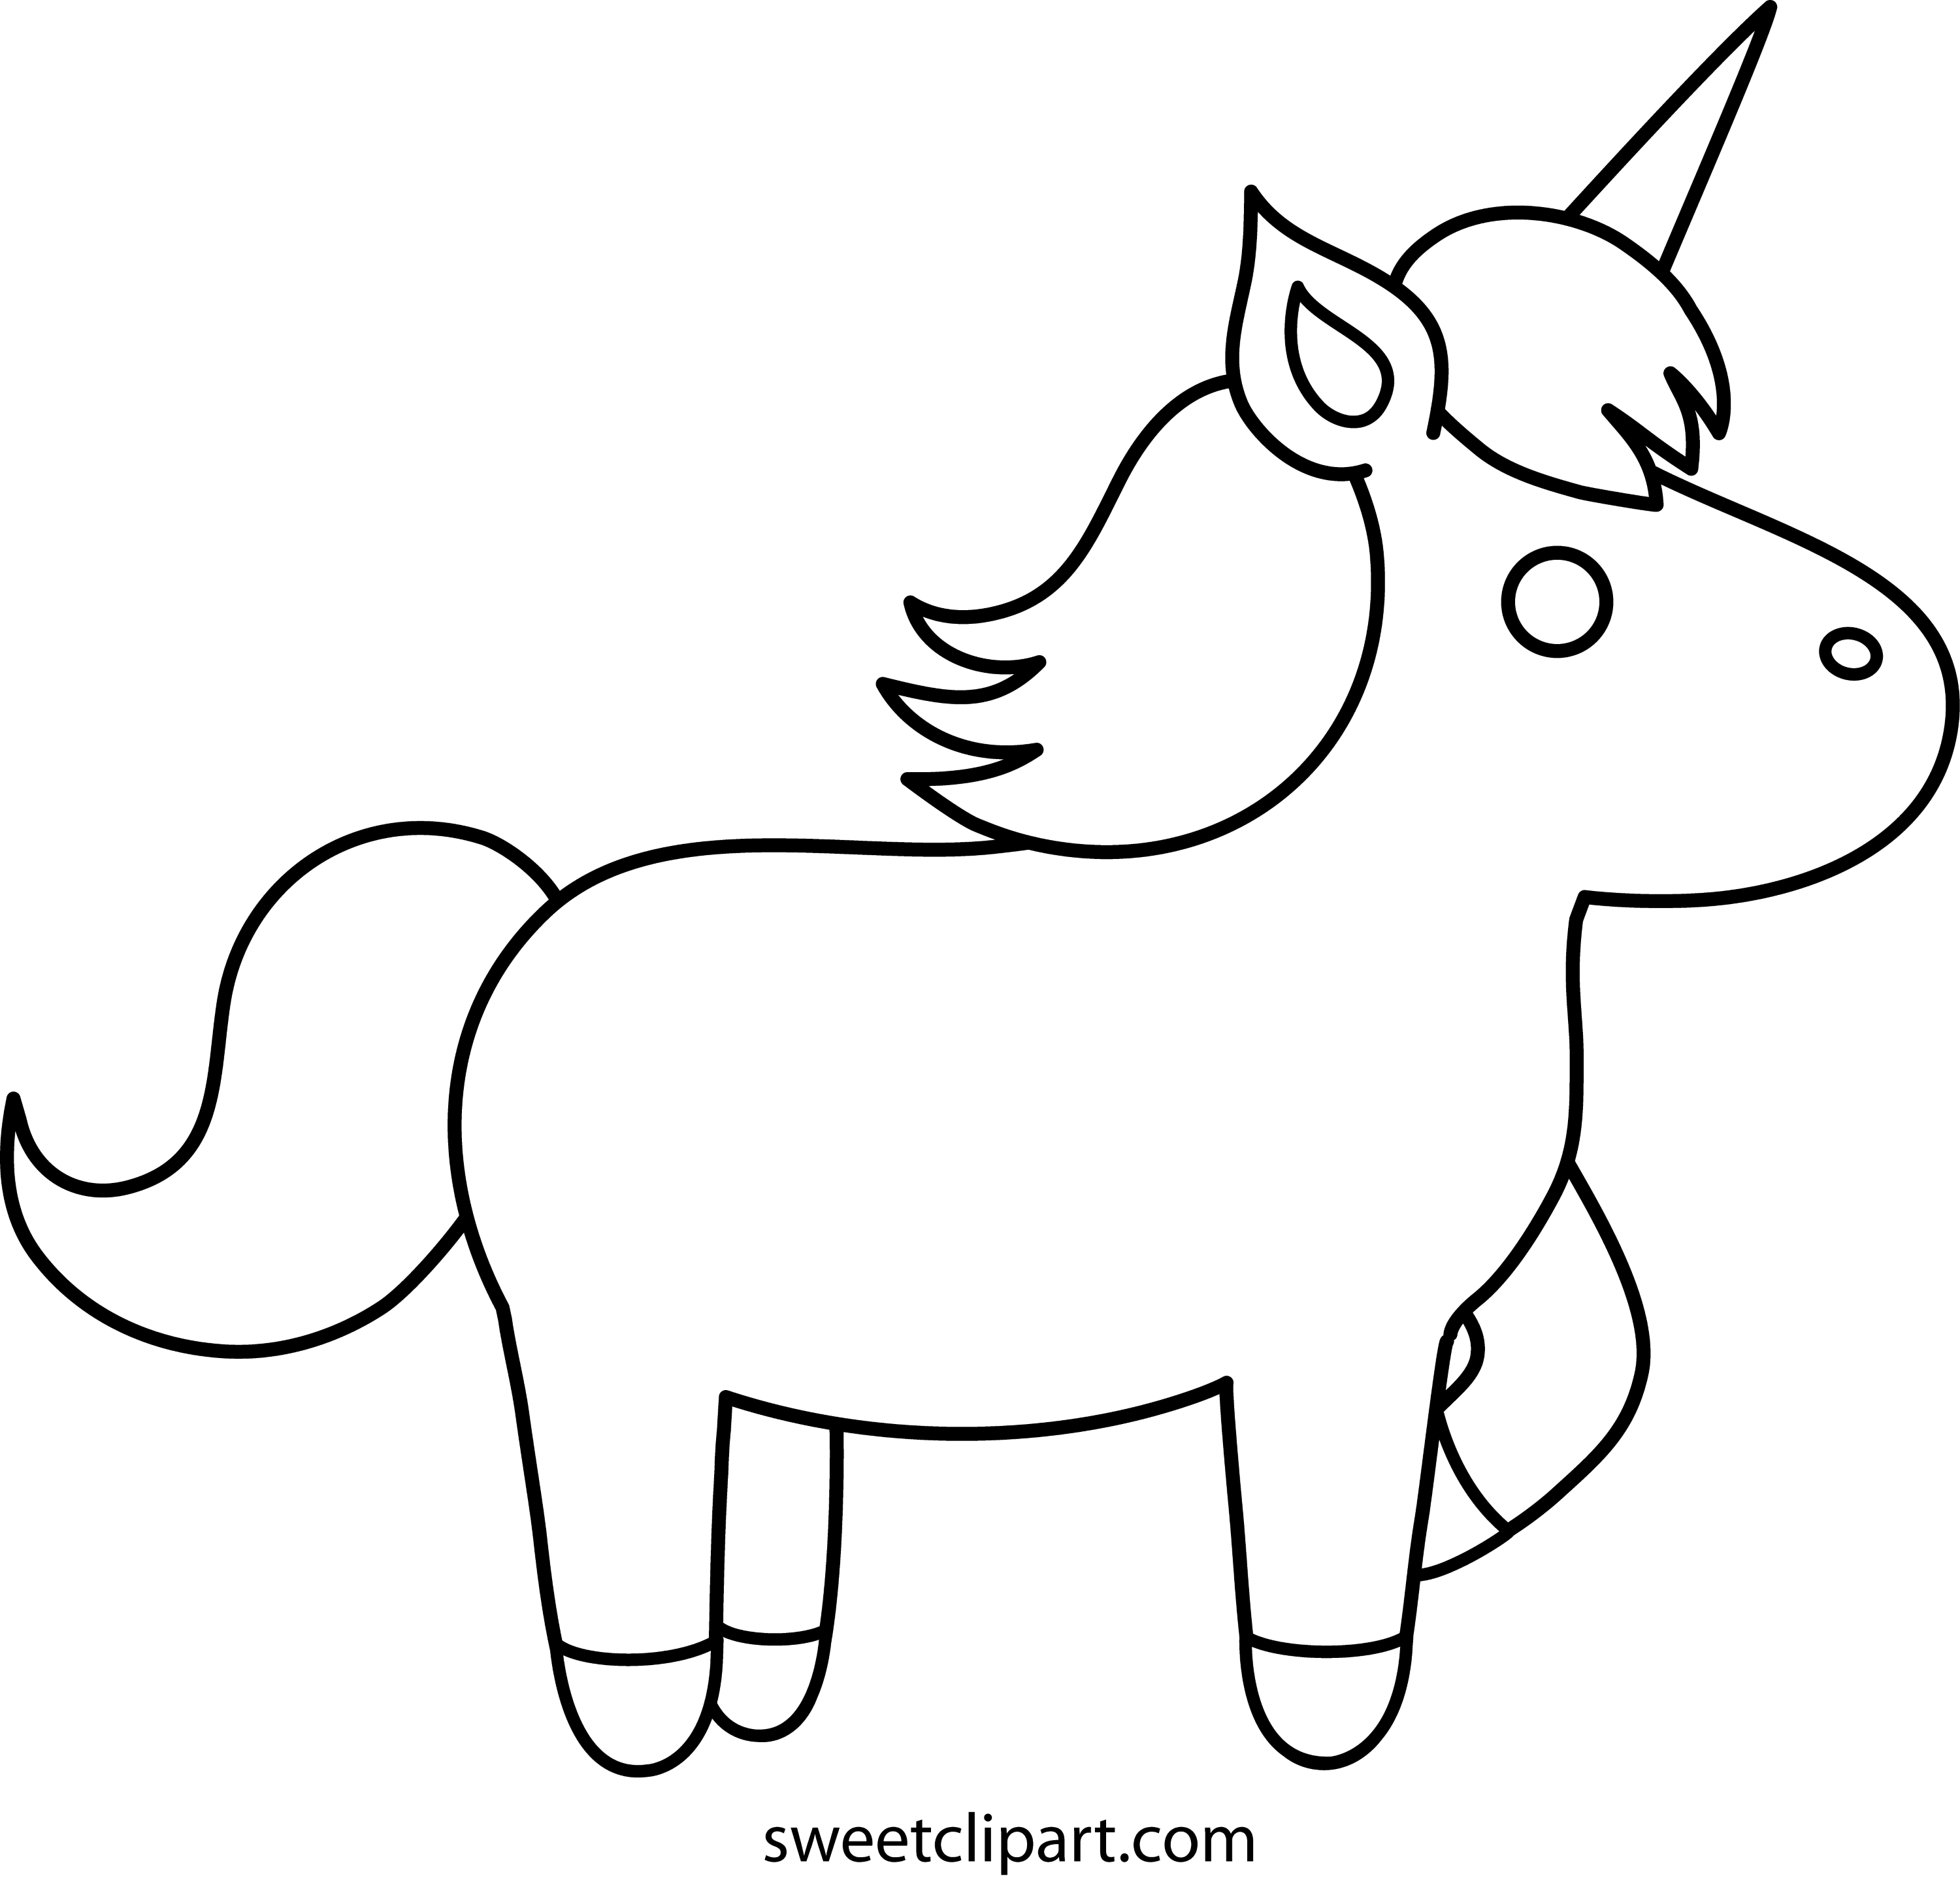 coloring outline pictures cute unicorn coloring page free clip art pictures outline coloring